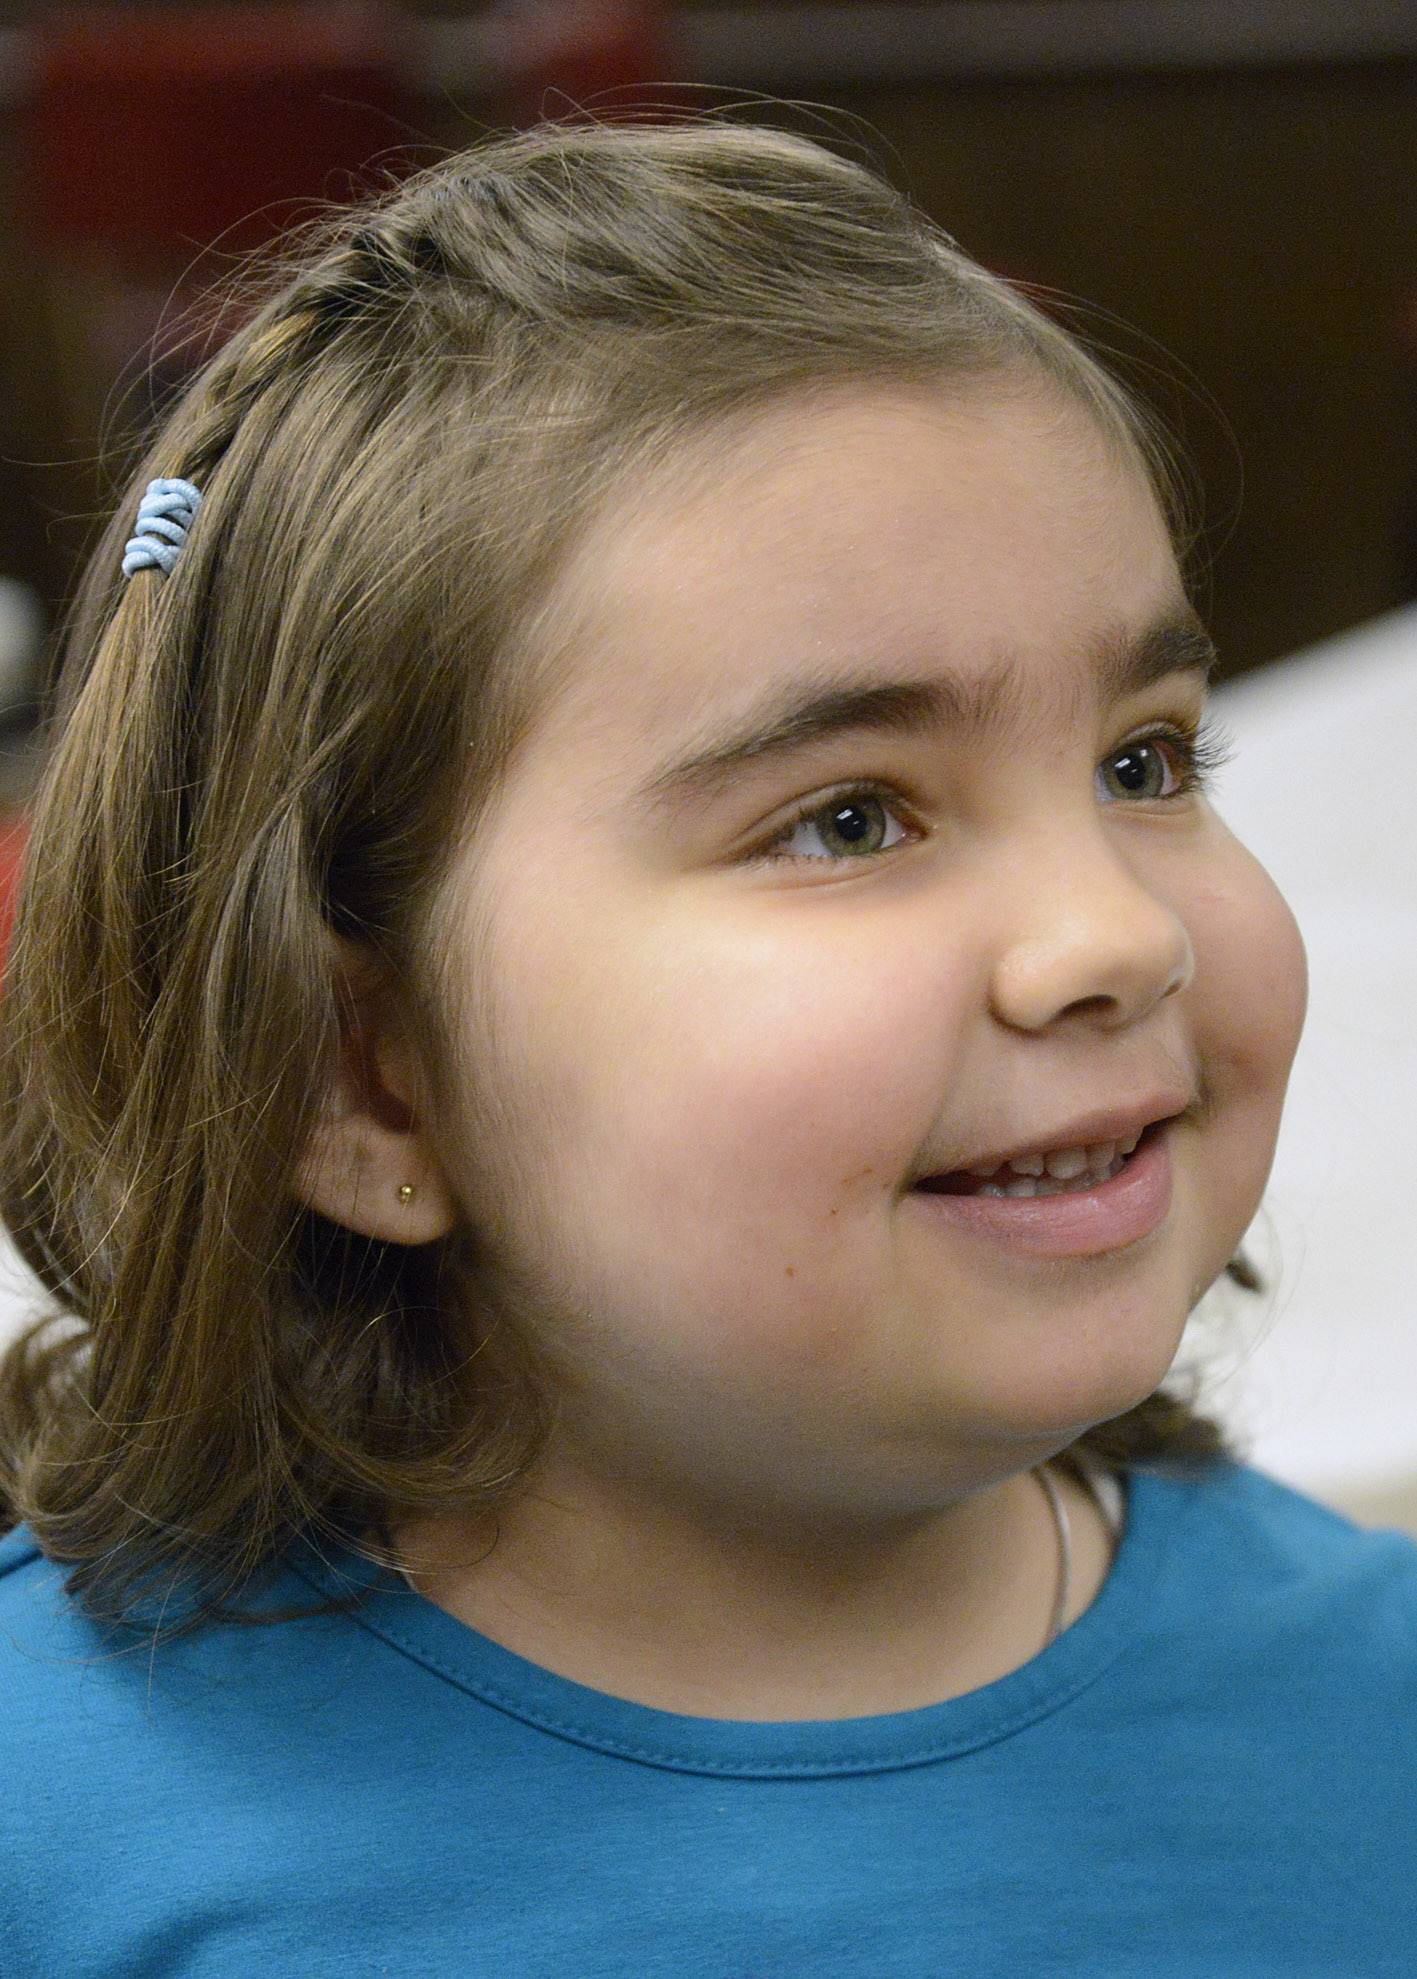 Maria Serban, 6, of South Elgin smiles as she talks to Dylan Snyder, 11, also of South Elgin, after Dylan presented Maria and her mother, Elena, with a check for nearly $4,000 at the South Elgin Lions Club on Wednesday, April 2. After the check presentation, they moved to another room allowing the Lions meeting to proceed as they got to know each other. Maria shared her experiences of being transported to the hospital in an ambulance and what happened to her at her hospital visits.